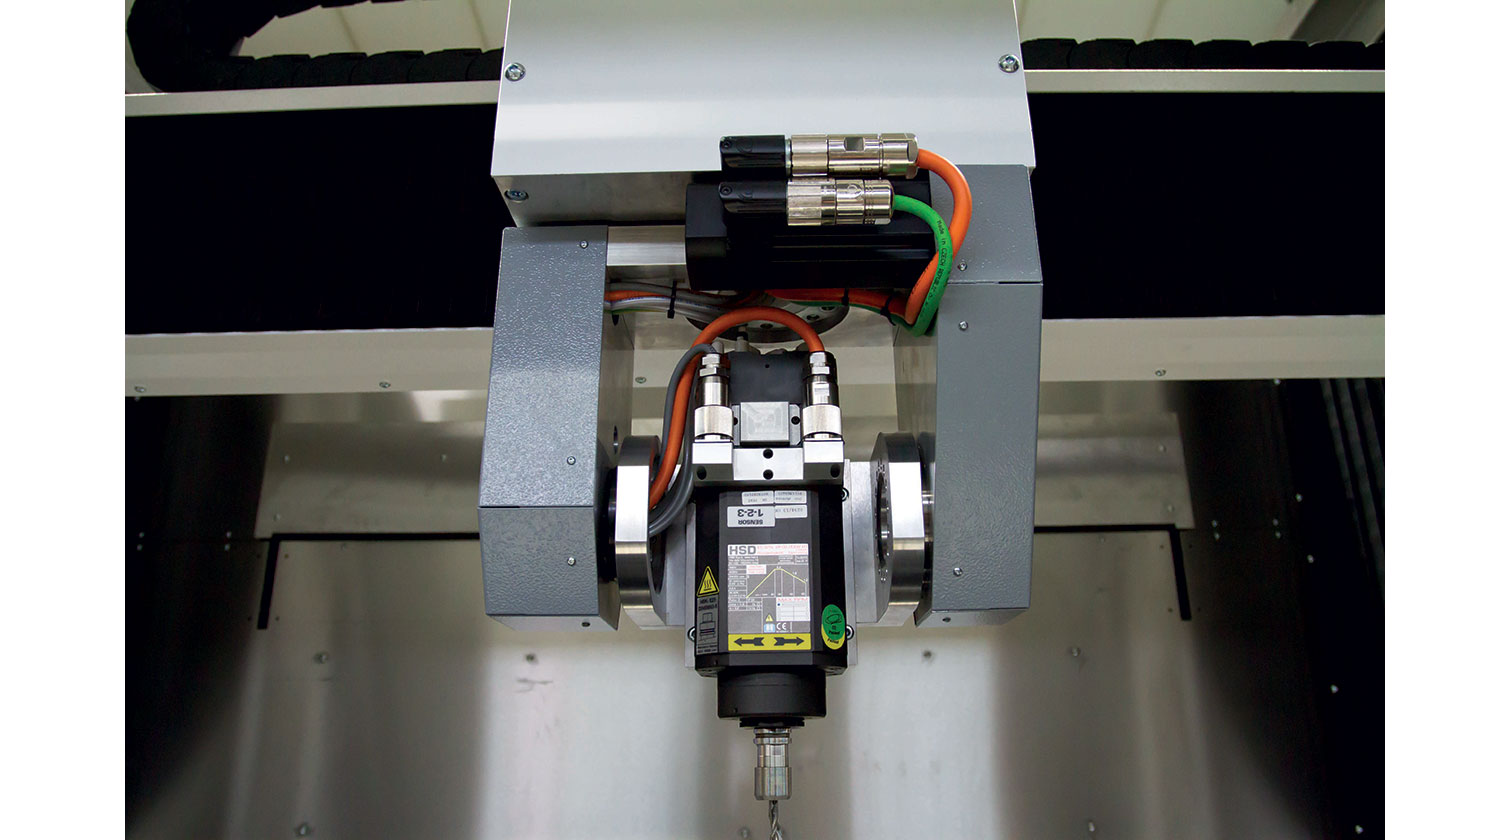 INT micro milling rapid prototyping CNC Imes Icore Platinum X5 spindle